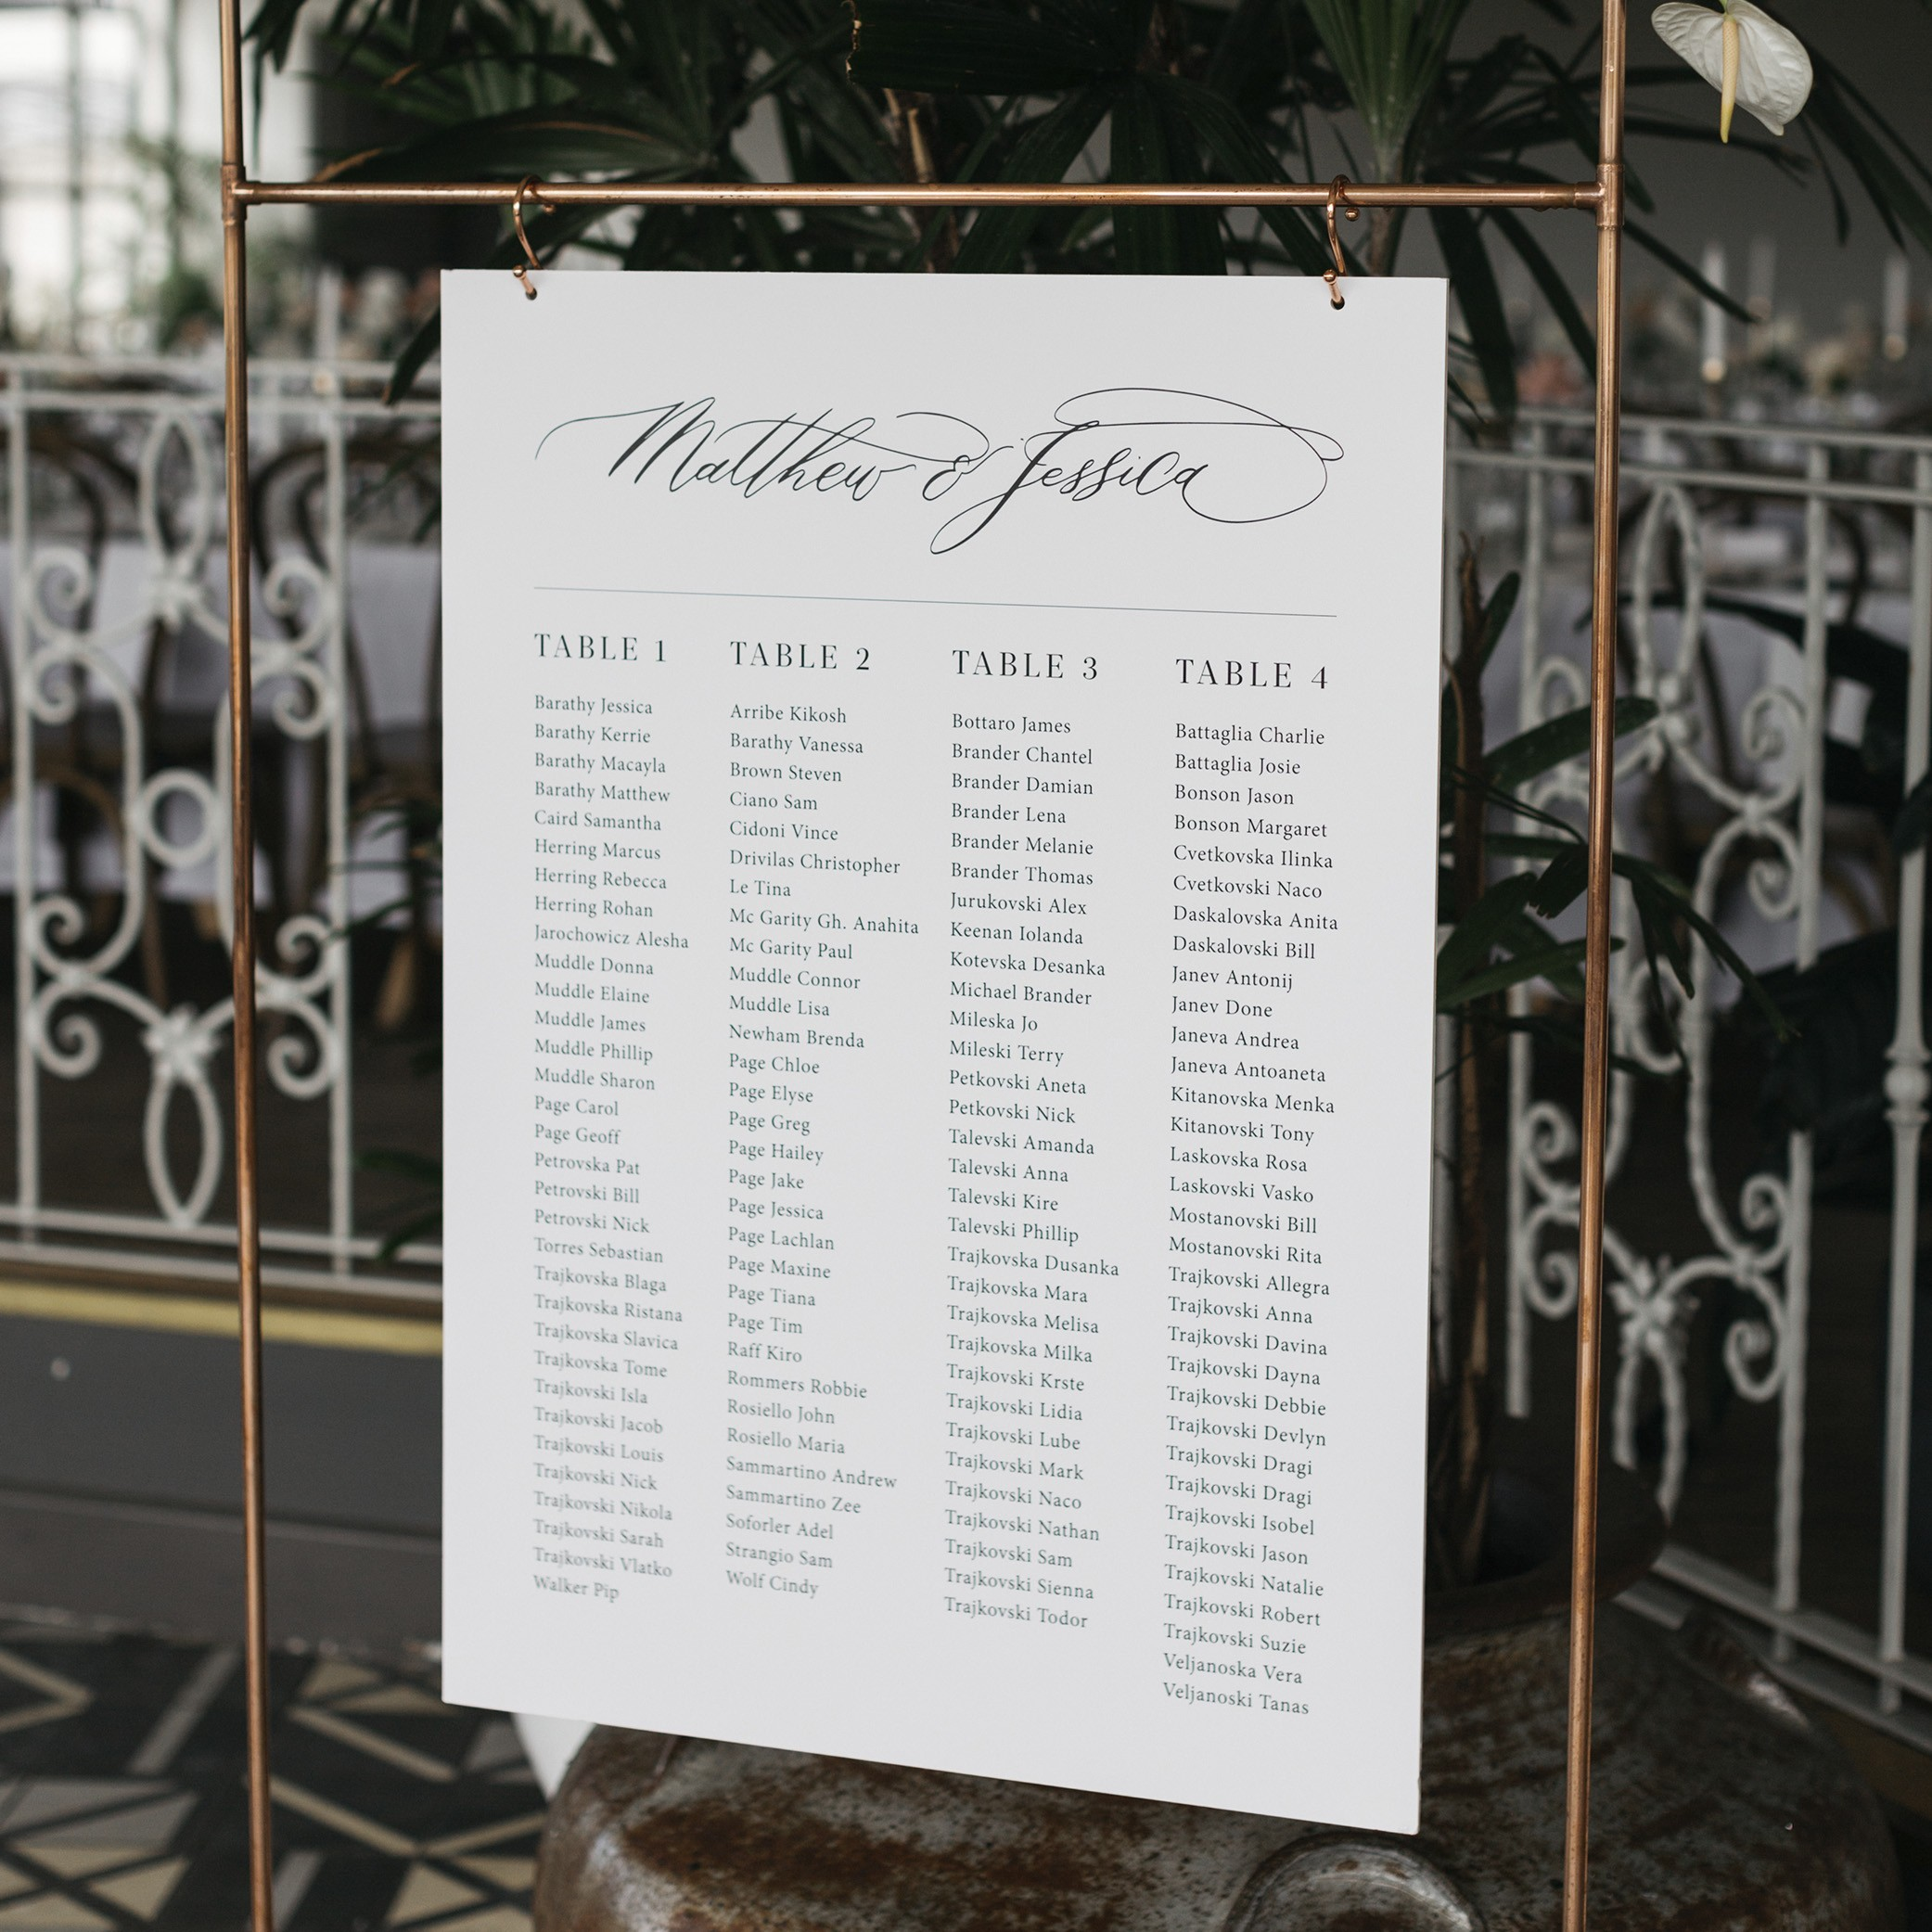 - SEATING CHART | Mr + Mrs Barathy